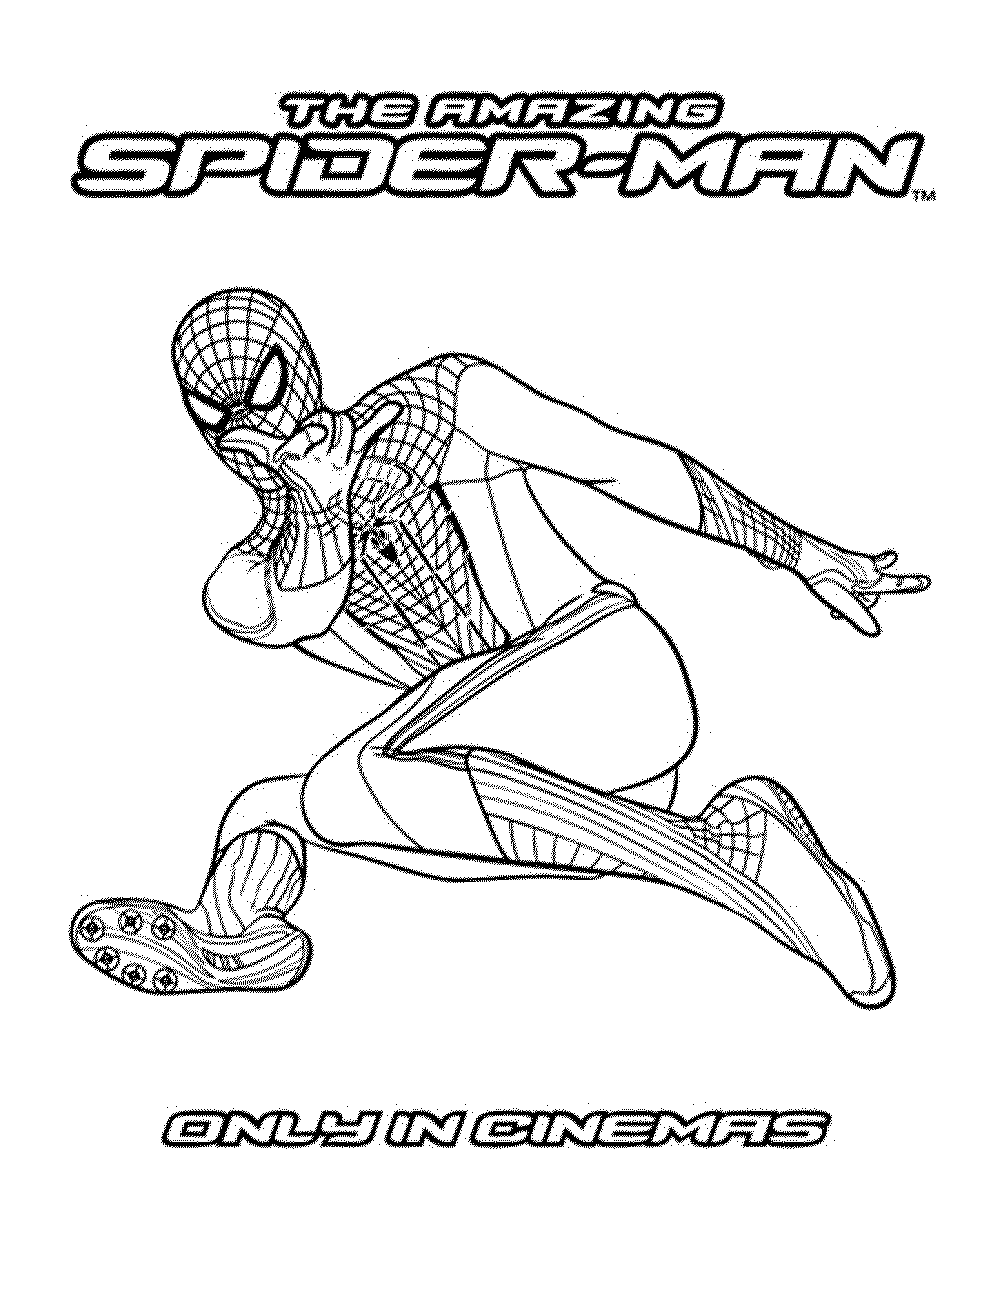 the amazing spiderman printable coloring pages - Coloring Pages Spiderman Printable